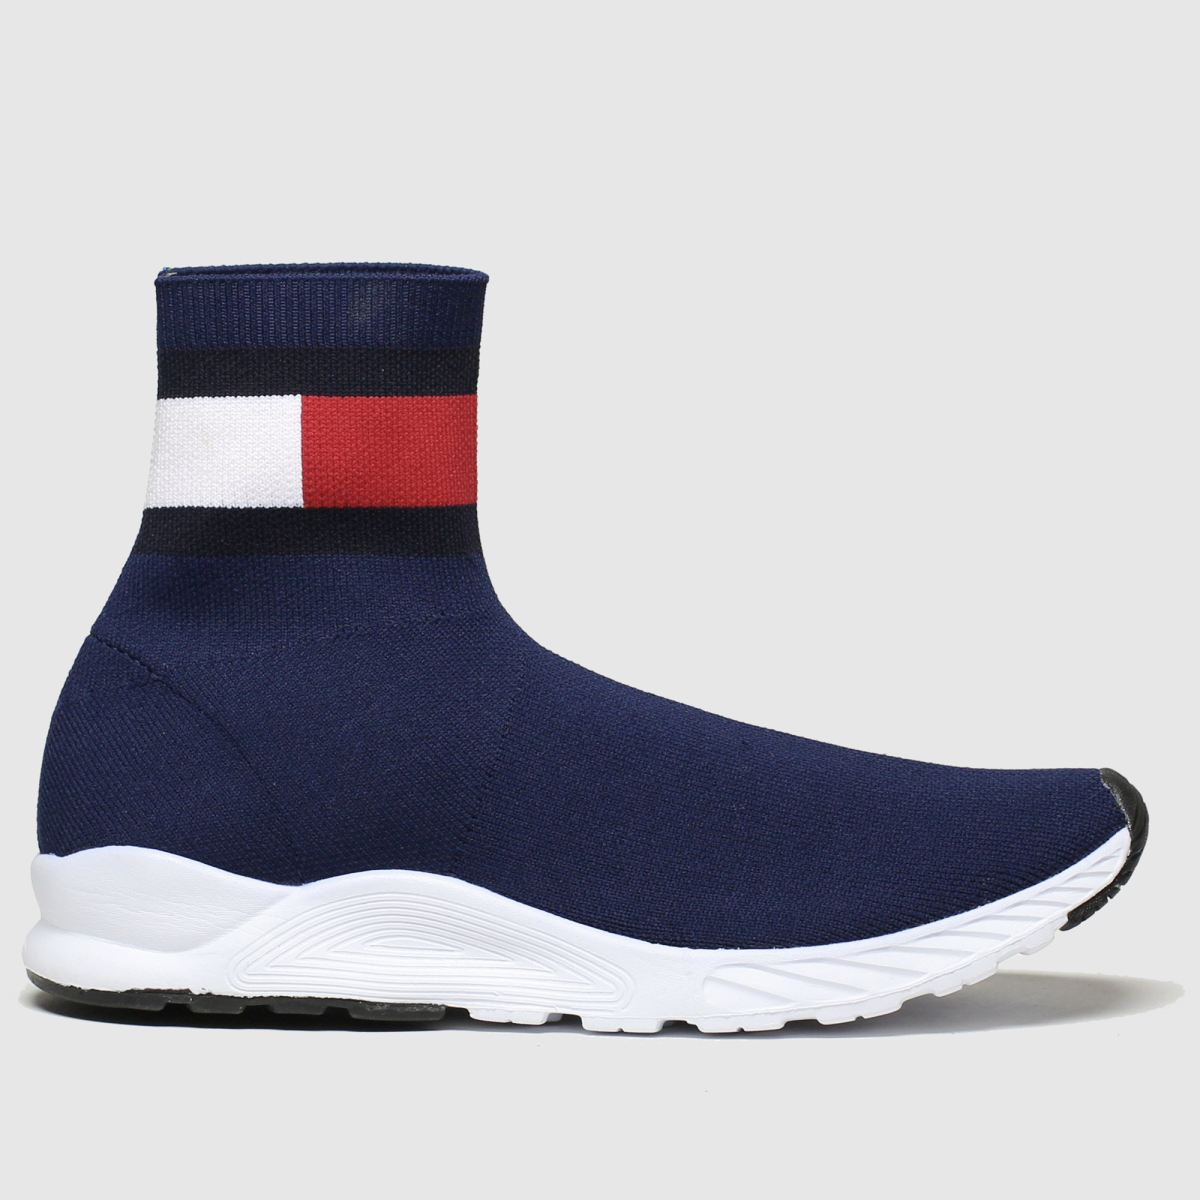 Click to view product details and reviews for Tommy Hilfiger Navy White Bootie Sneaker Boots Junior.